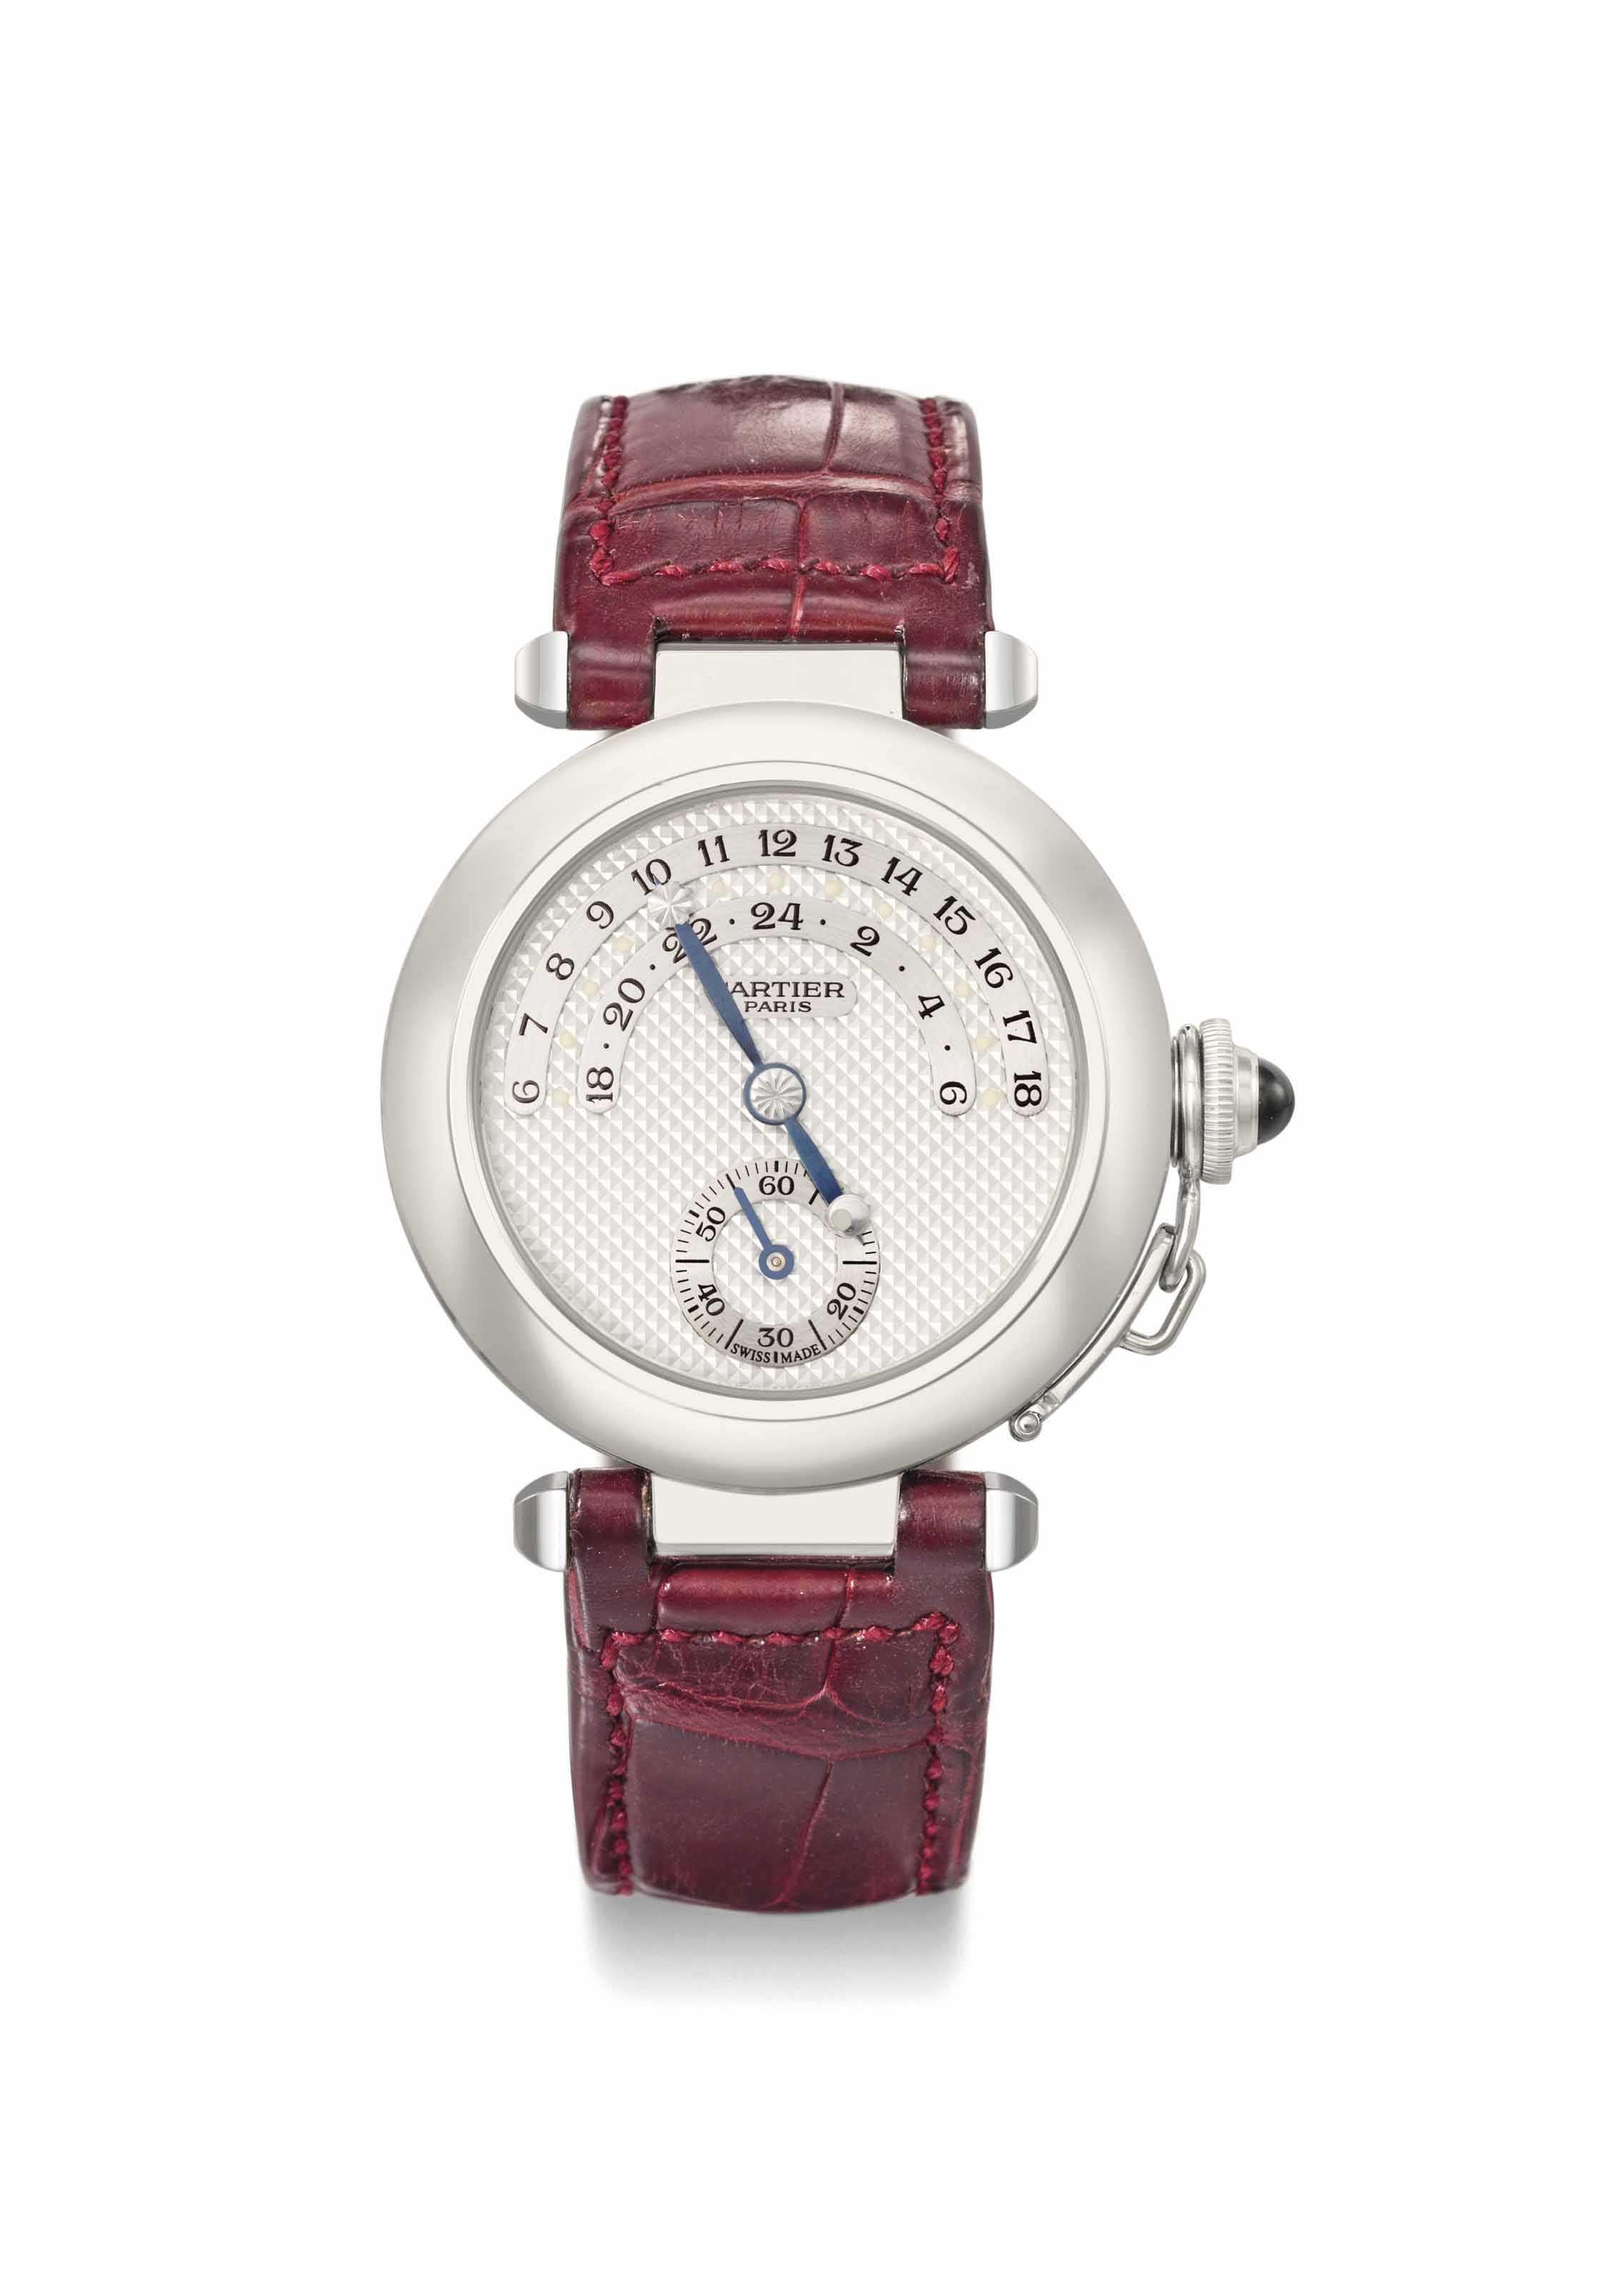 Cartier. A limited edition 18K white gold automatic jump hour wristwatch with night and day display